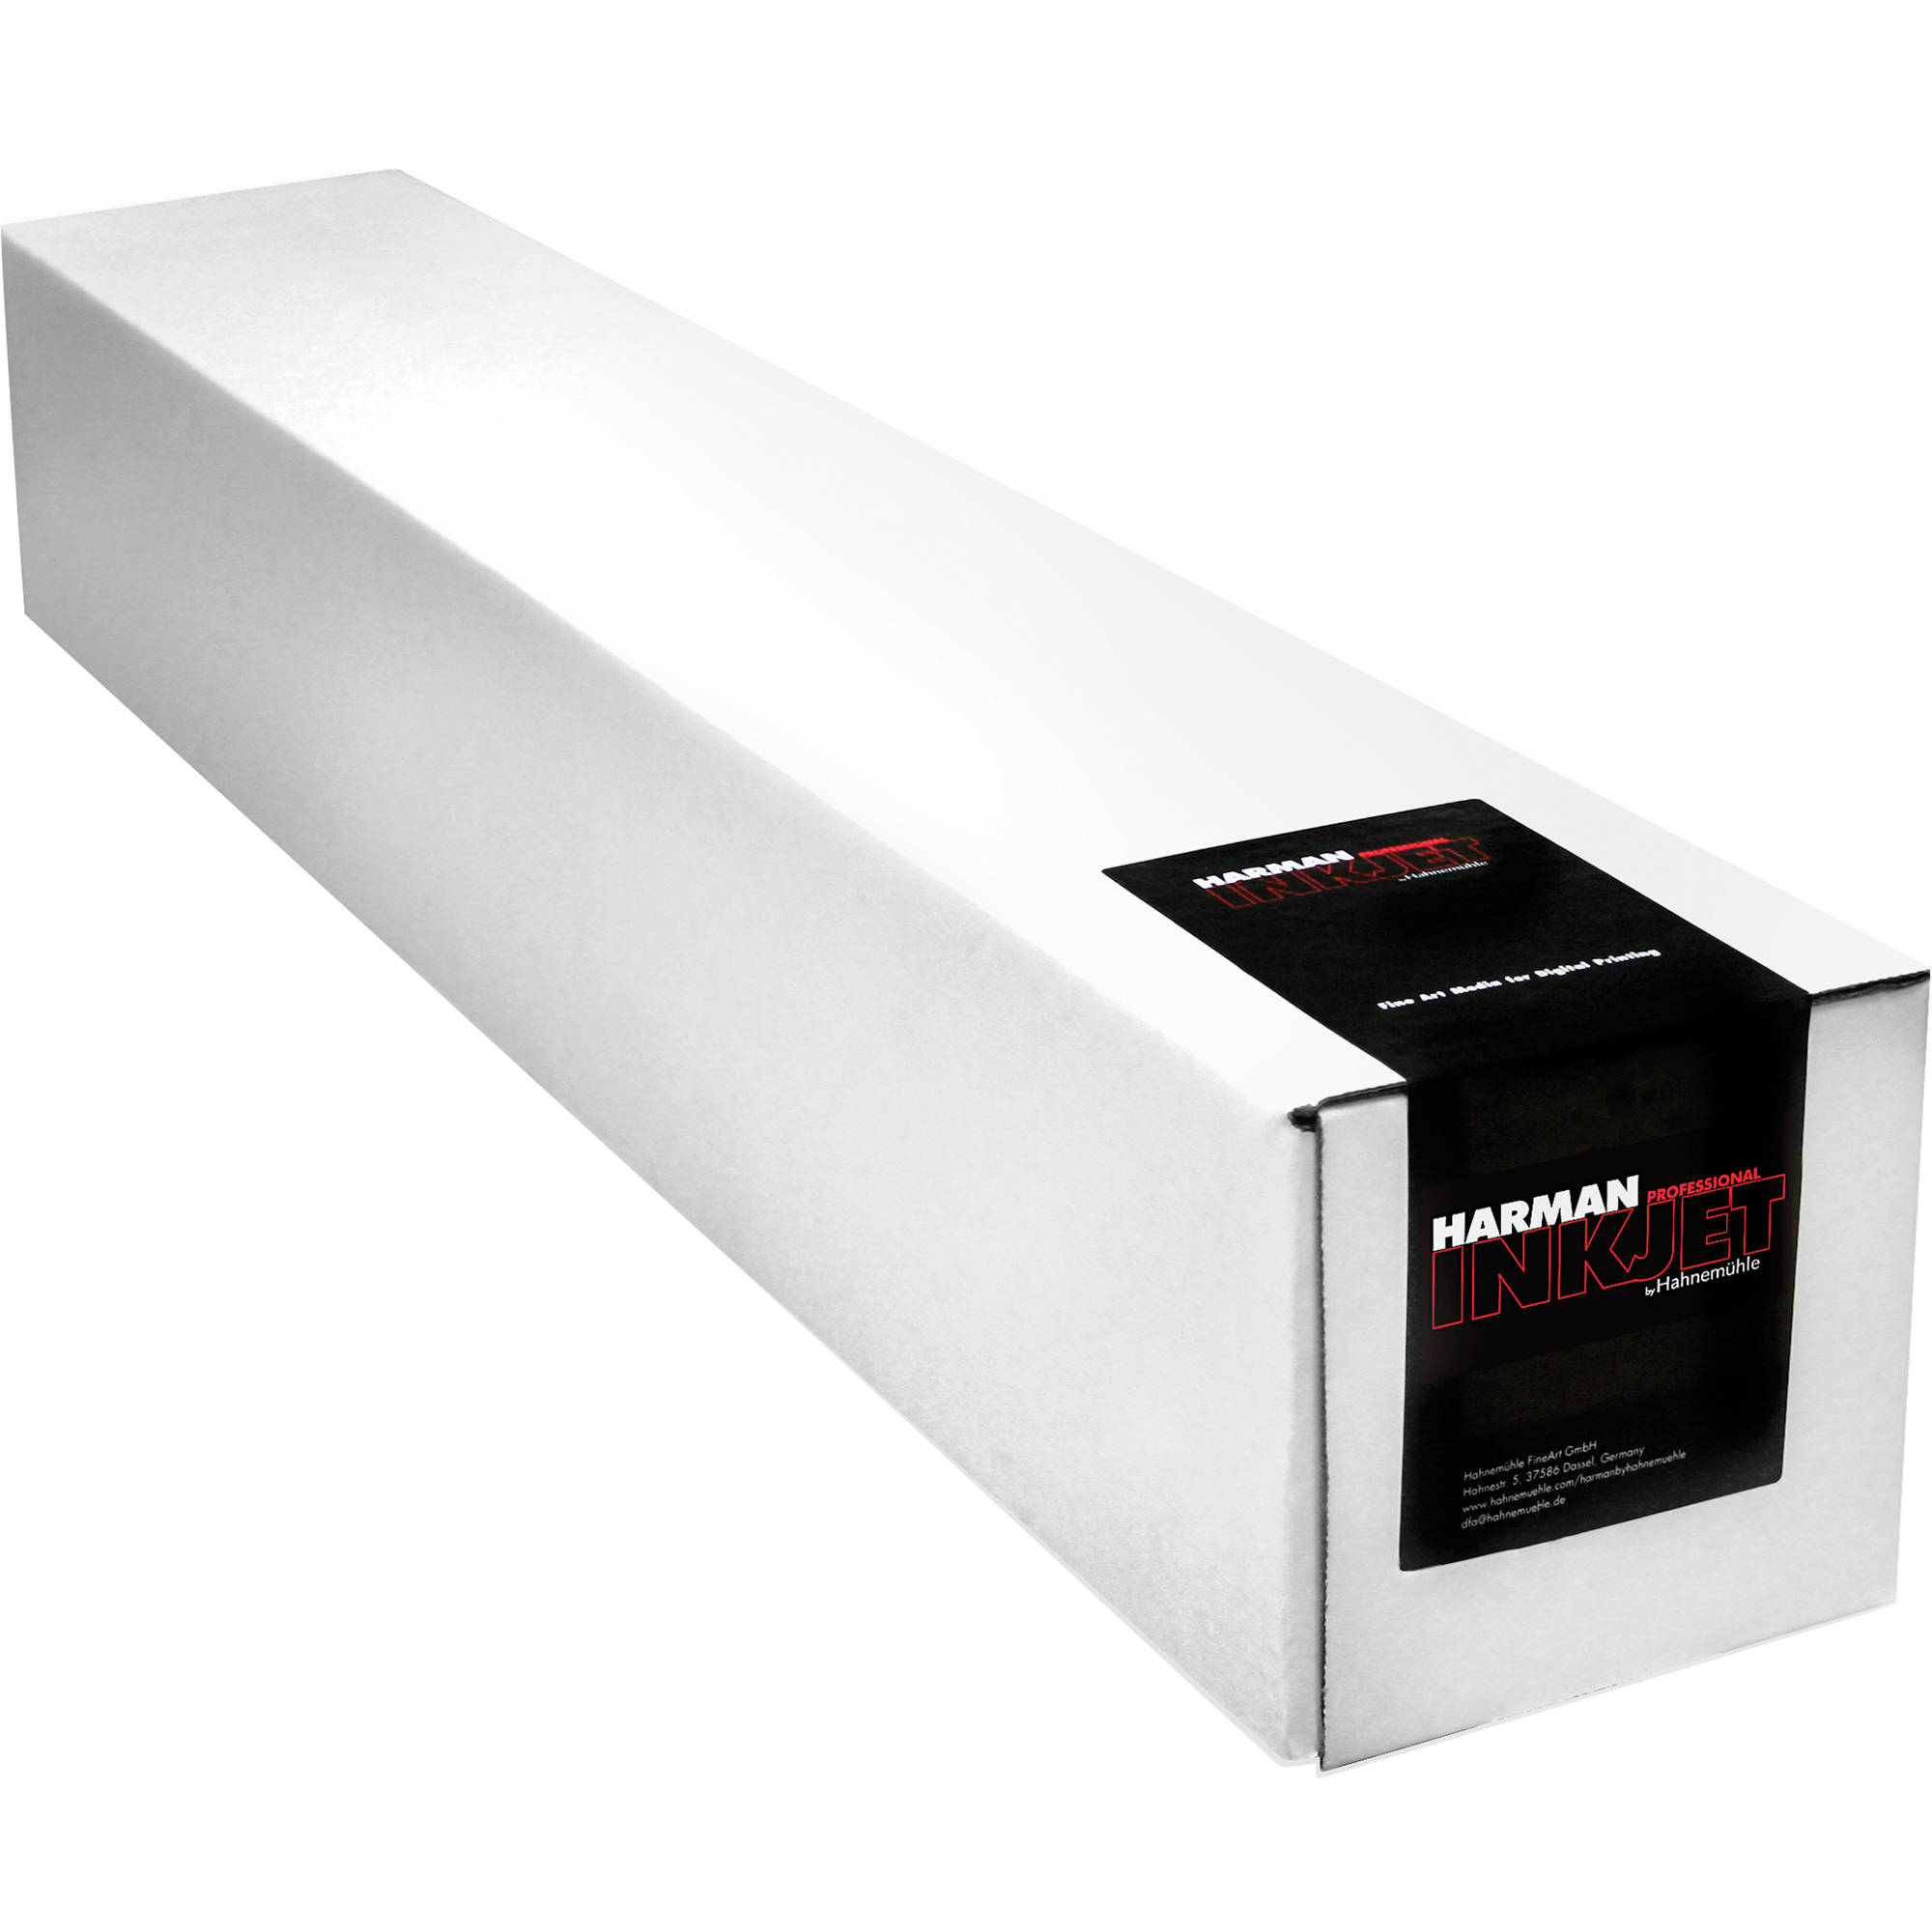 harman by hahnemuhle canvas archival inkjet paper 10646025 b h